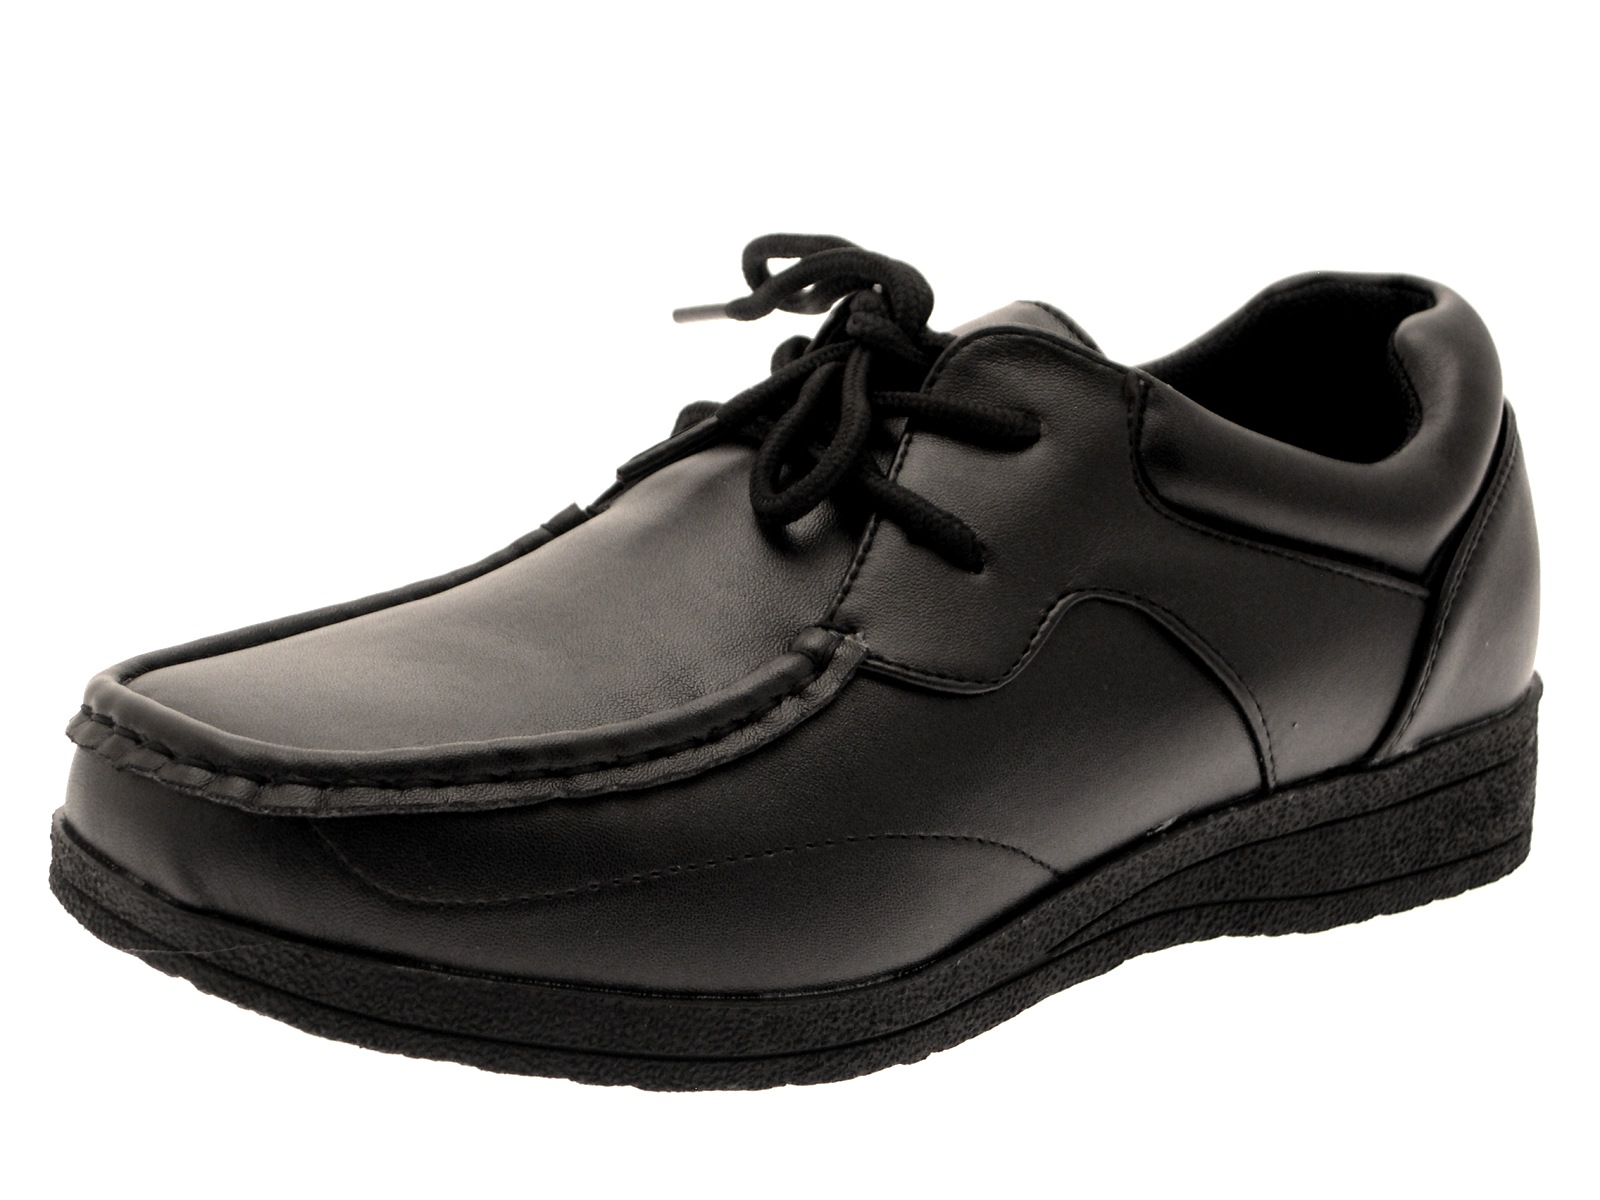 HALF PRICE SALE - Boys Black School Shoes Faux Leather Formal Shoes ... 423149755139